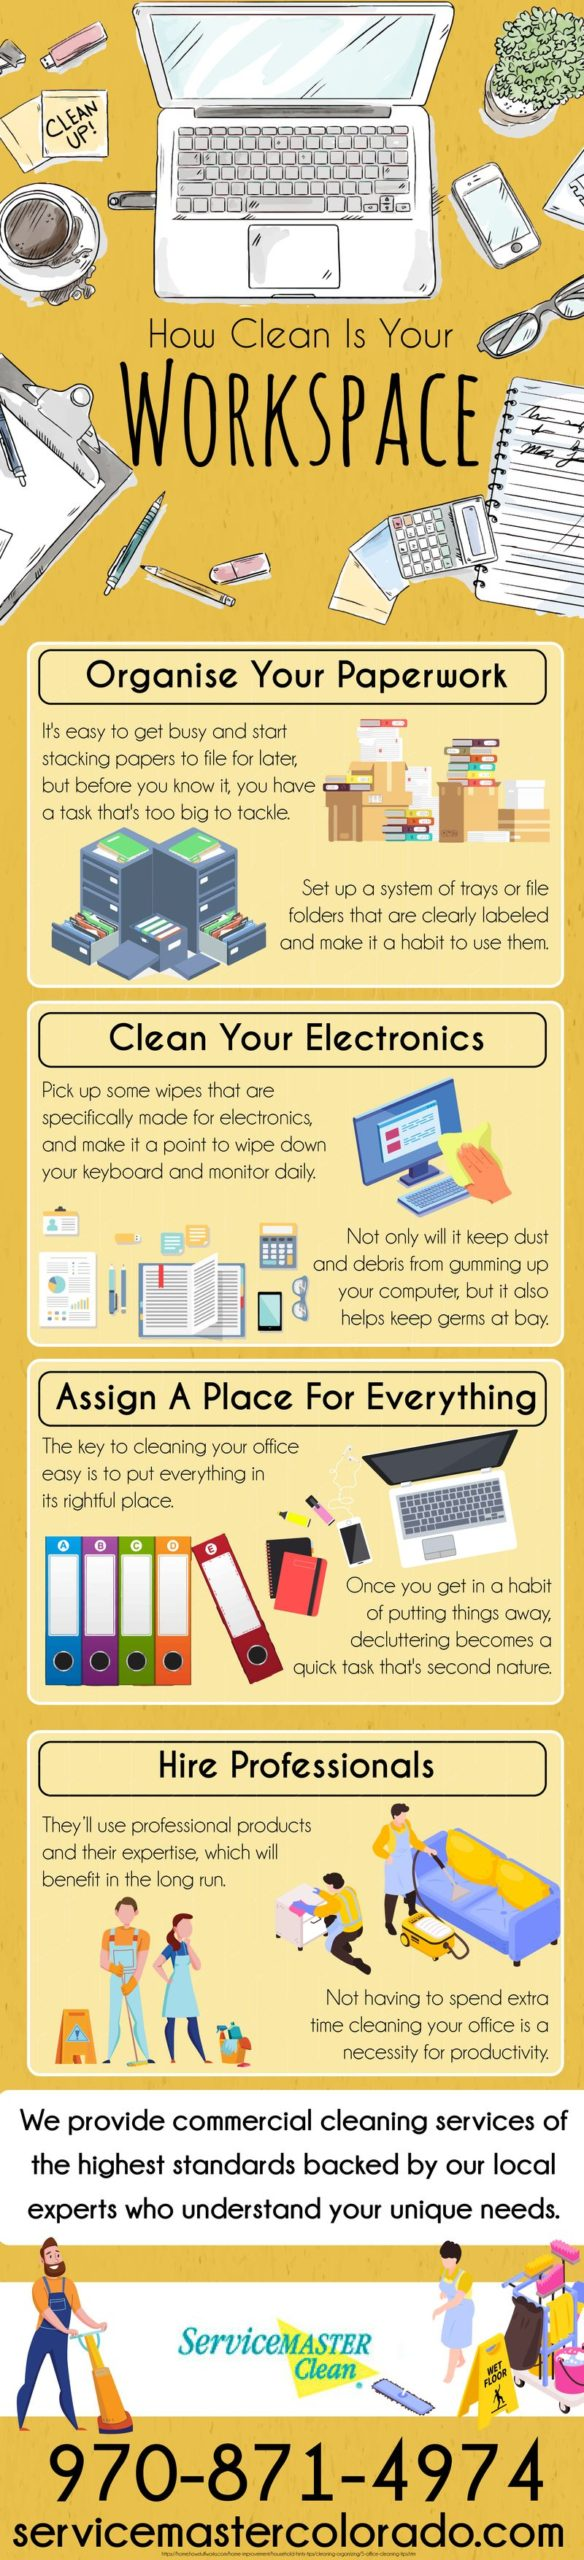 How Clean Is Your Workspace